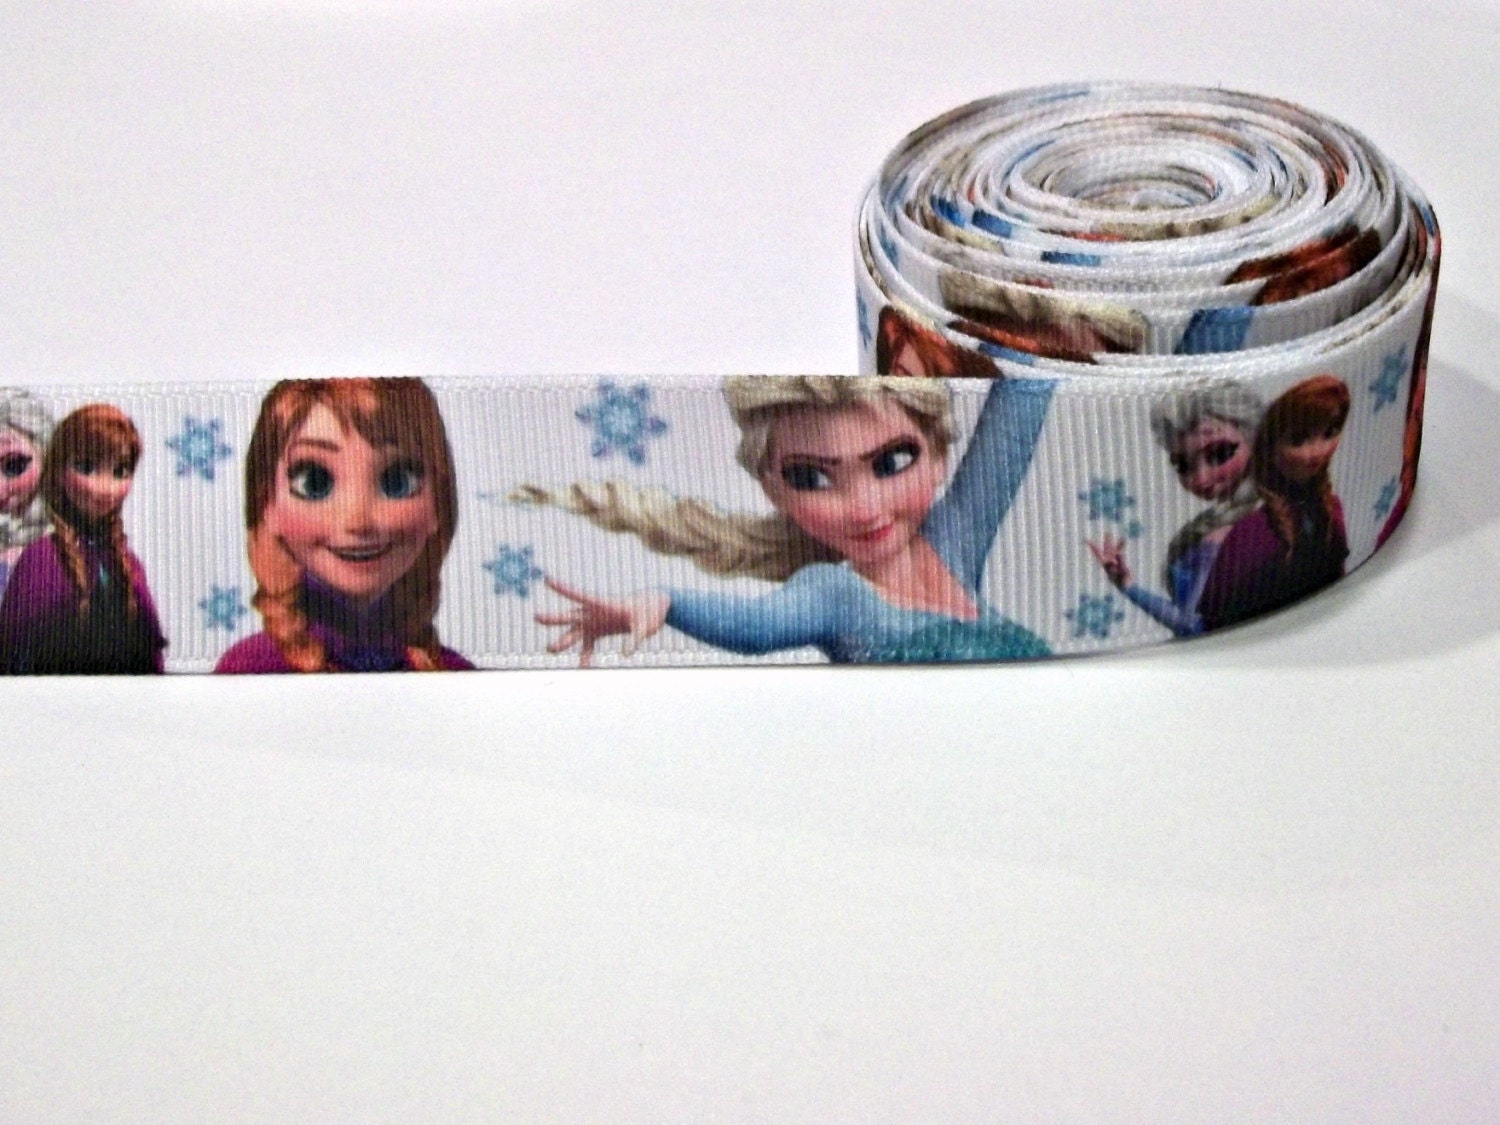 http://www.etsy.com/listing/177792601/78-wide-frozen-themed-ribbon-1-yard-anna?ref=sr_gallery_16&ga_search_query=disney+frozen+&ga_order=most_relevant&ga_ship_to=US&ga_search_type=supplies&ga_view_type=gallery